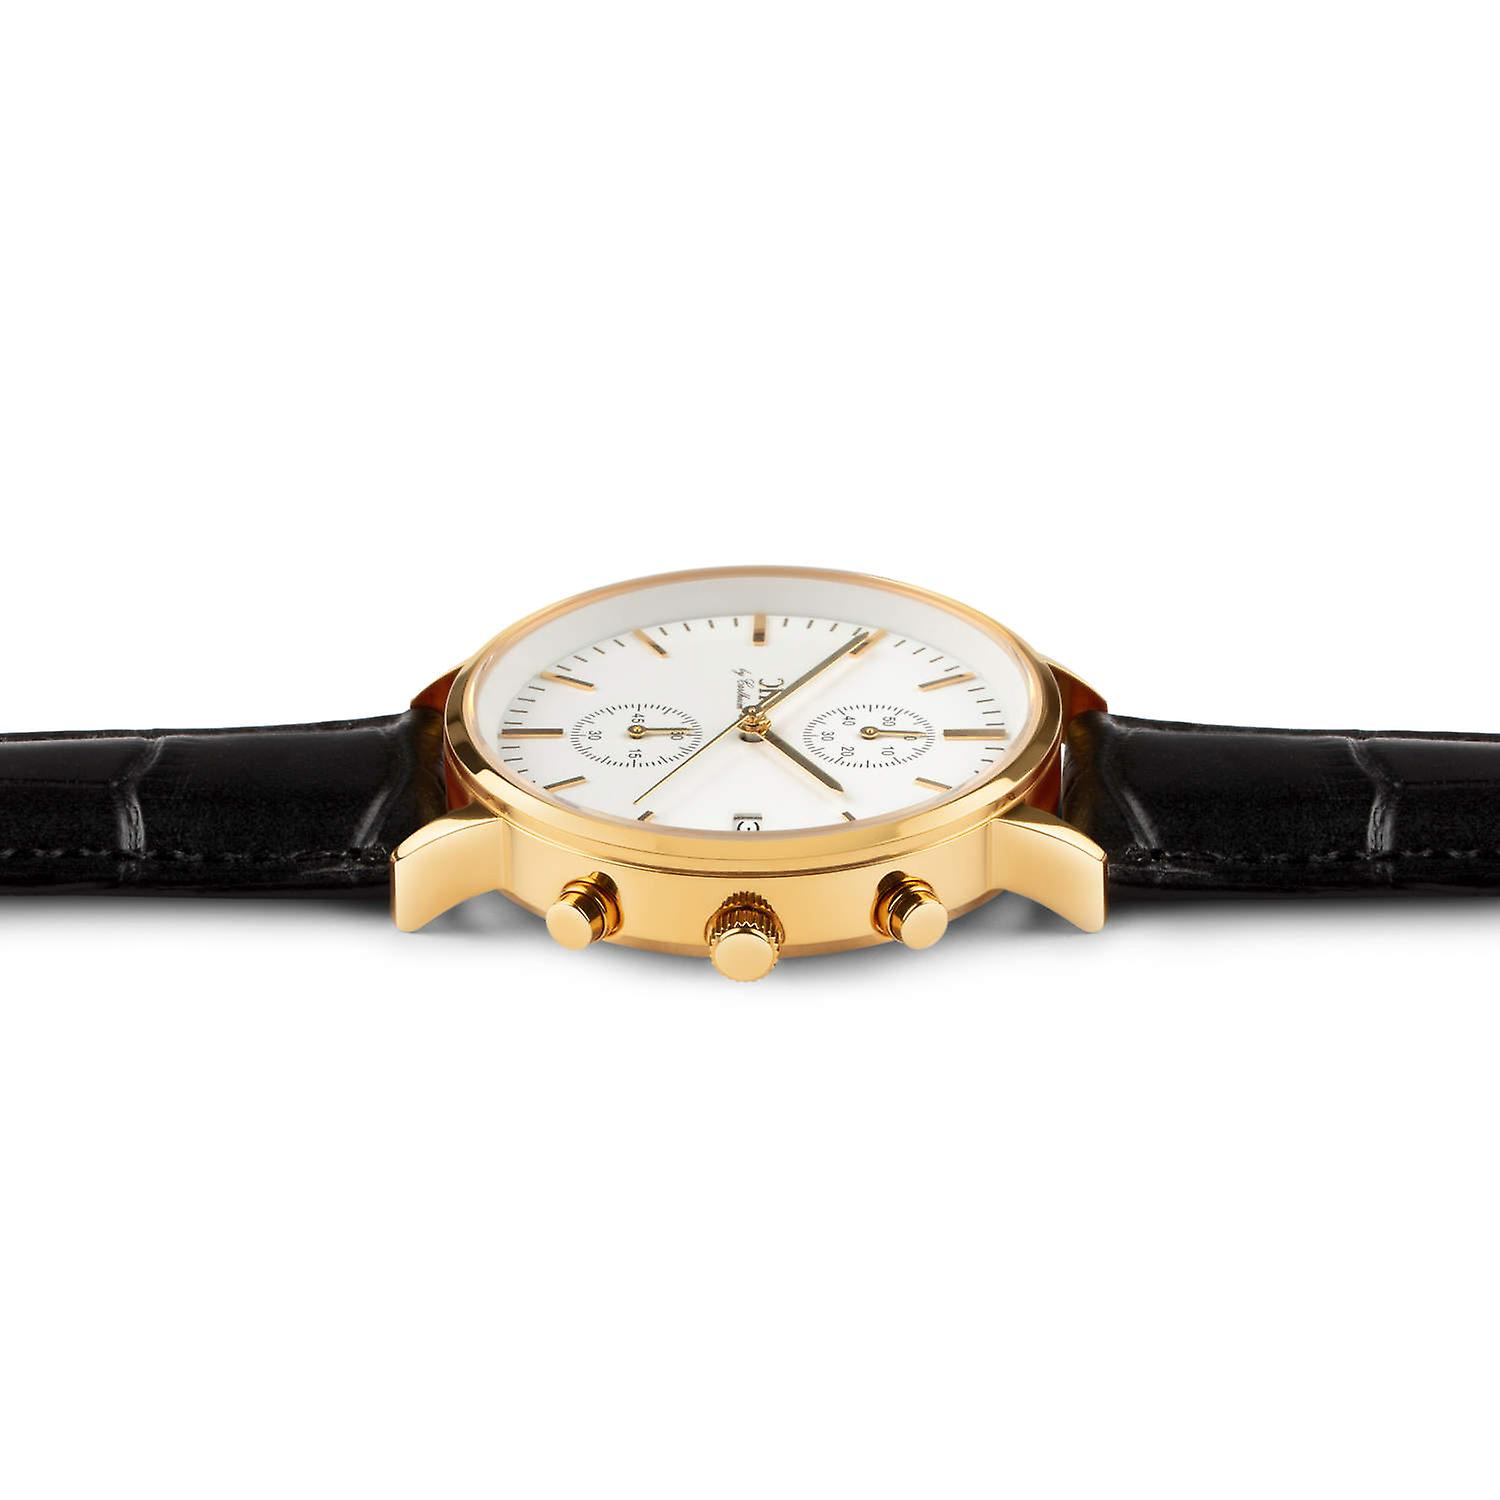 Carlheim | Wrist Watches | Chronograph | Amager | Scandinavian design